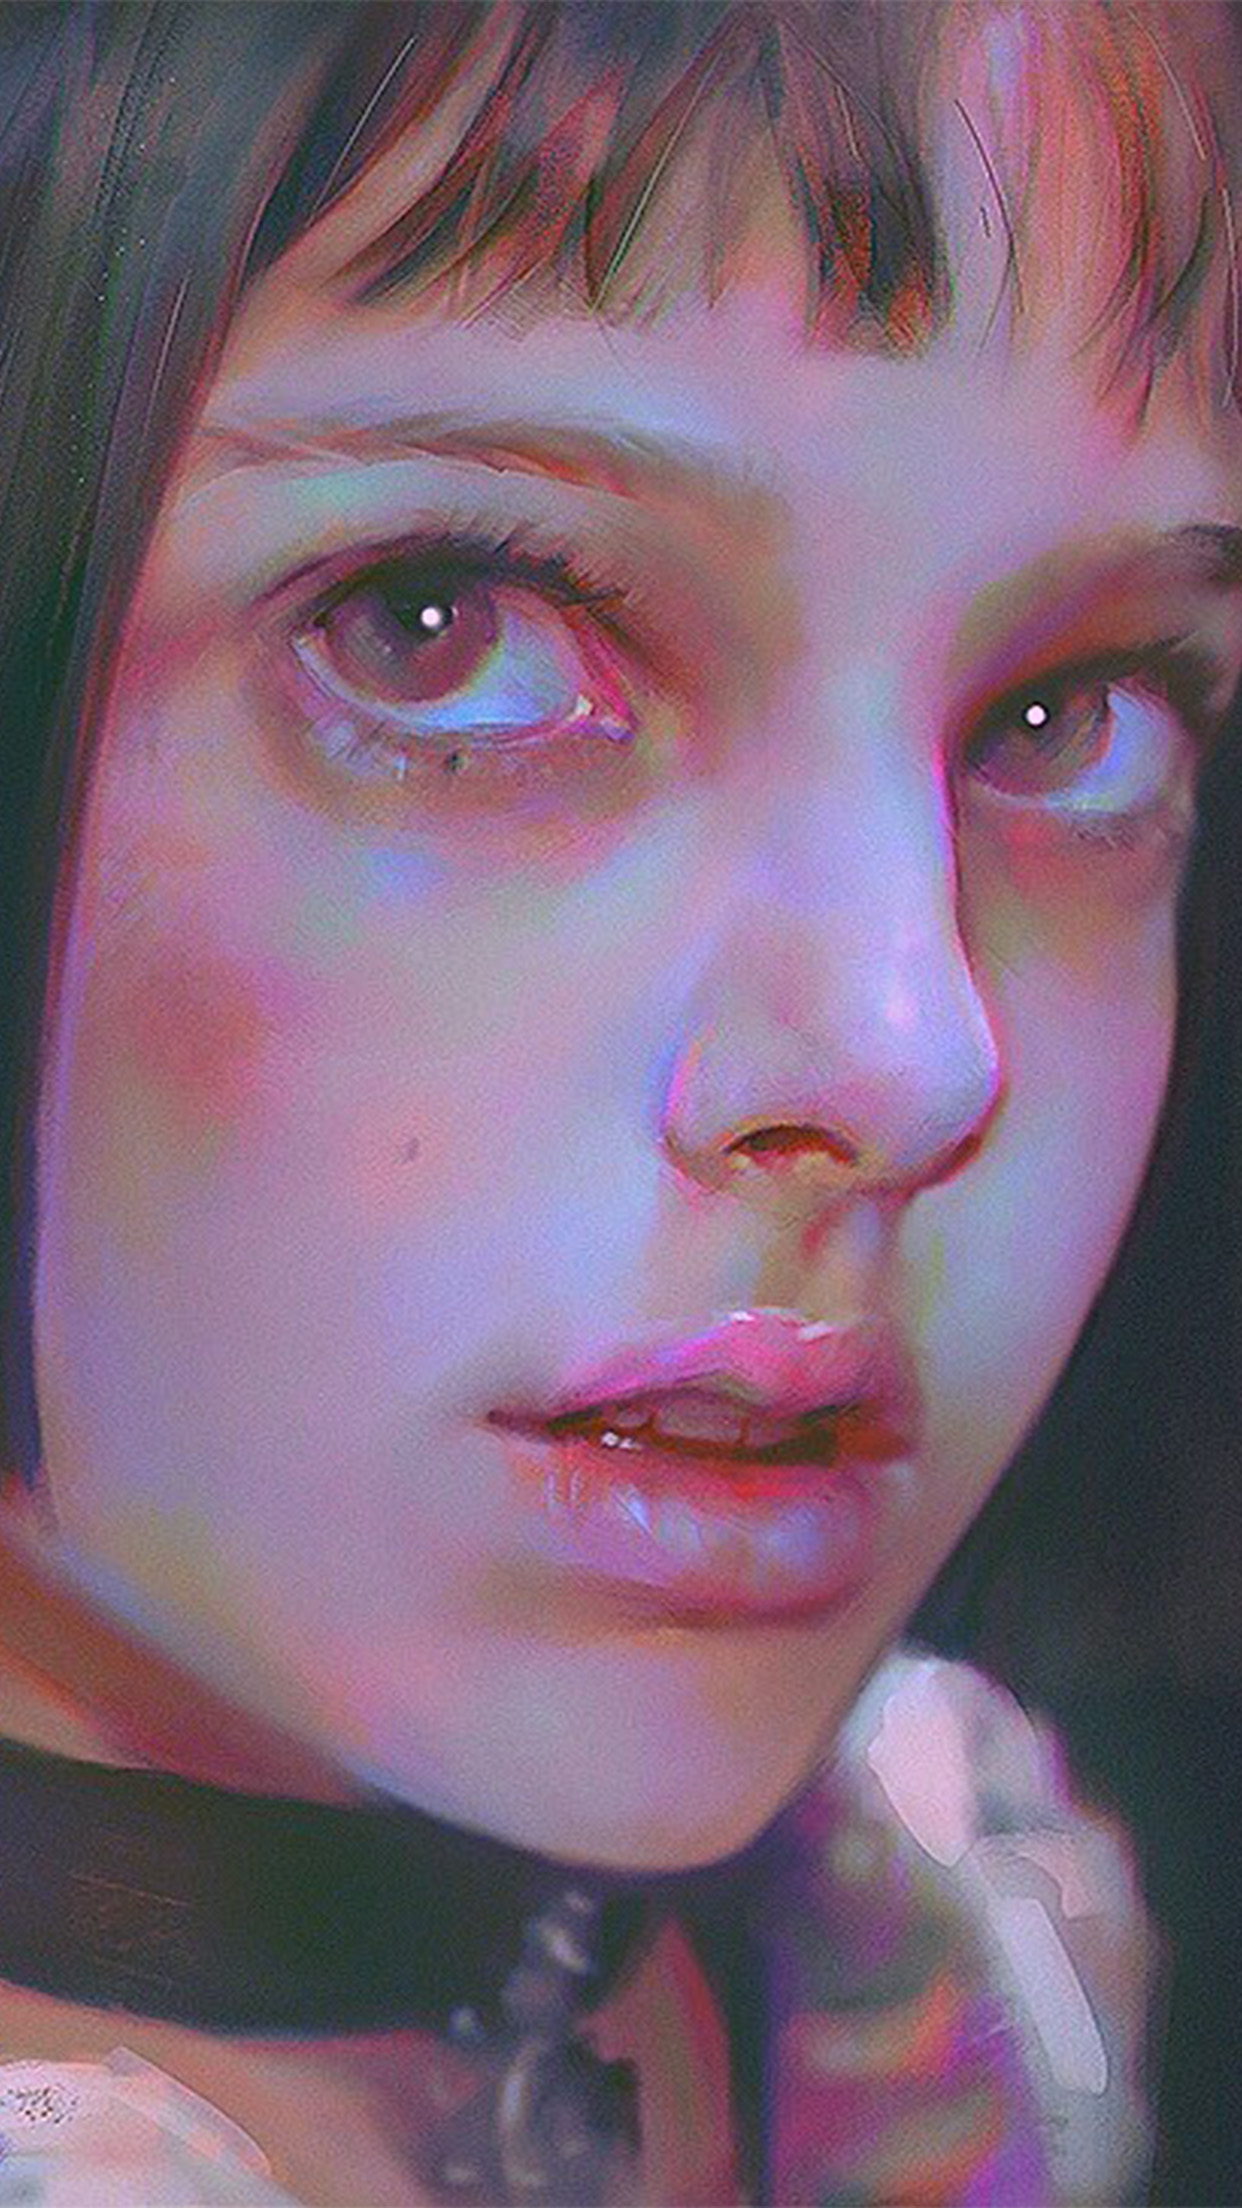 ax50-matilda-leon-paint-illustration-art-yanjun-cheng-wallpaper